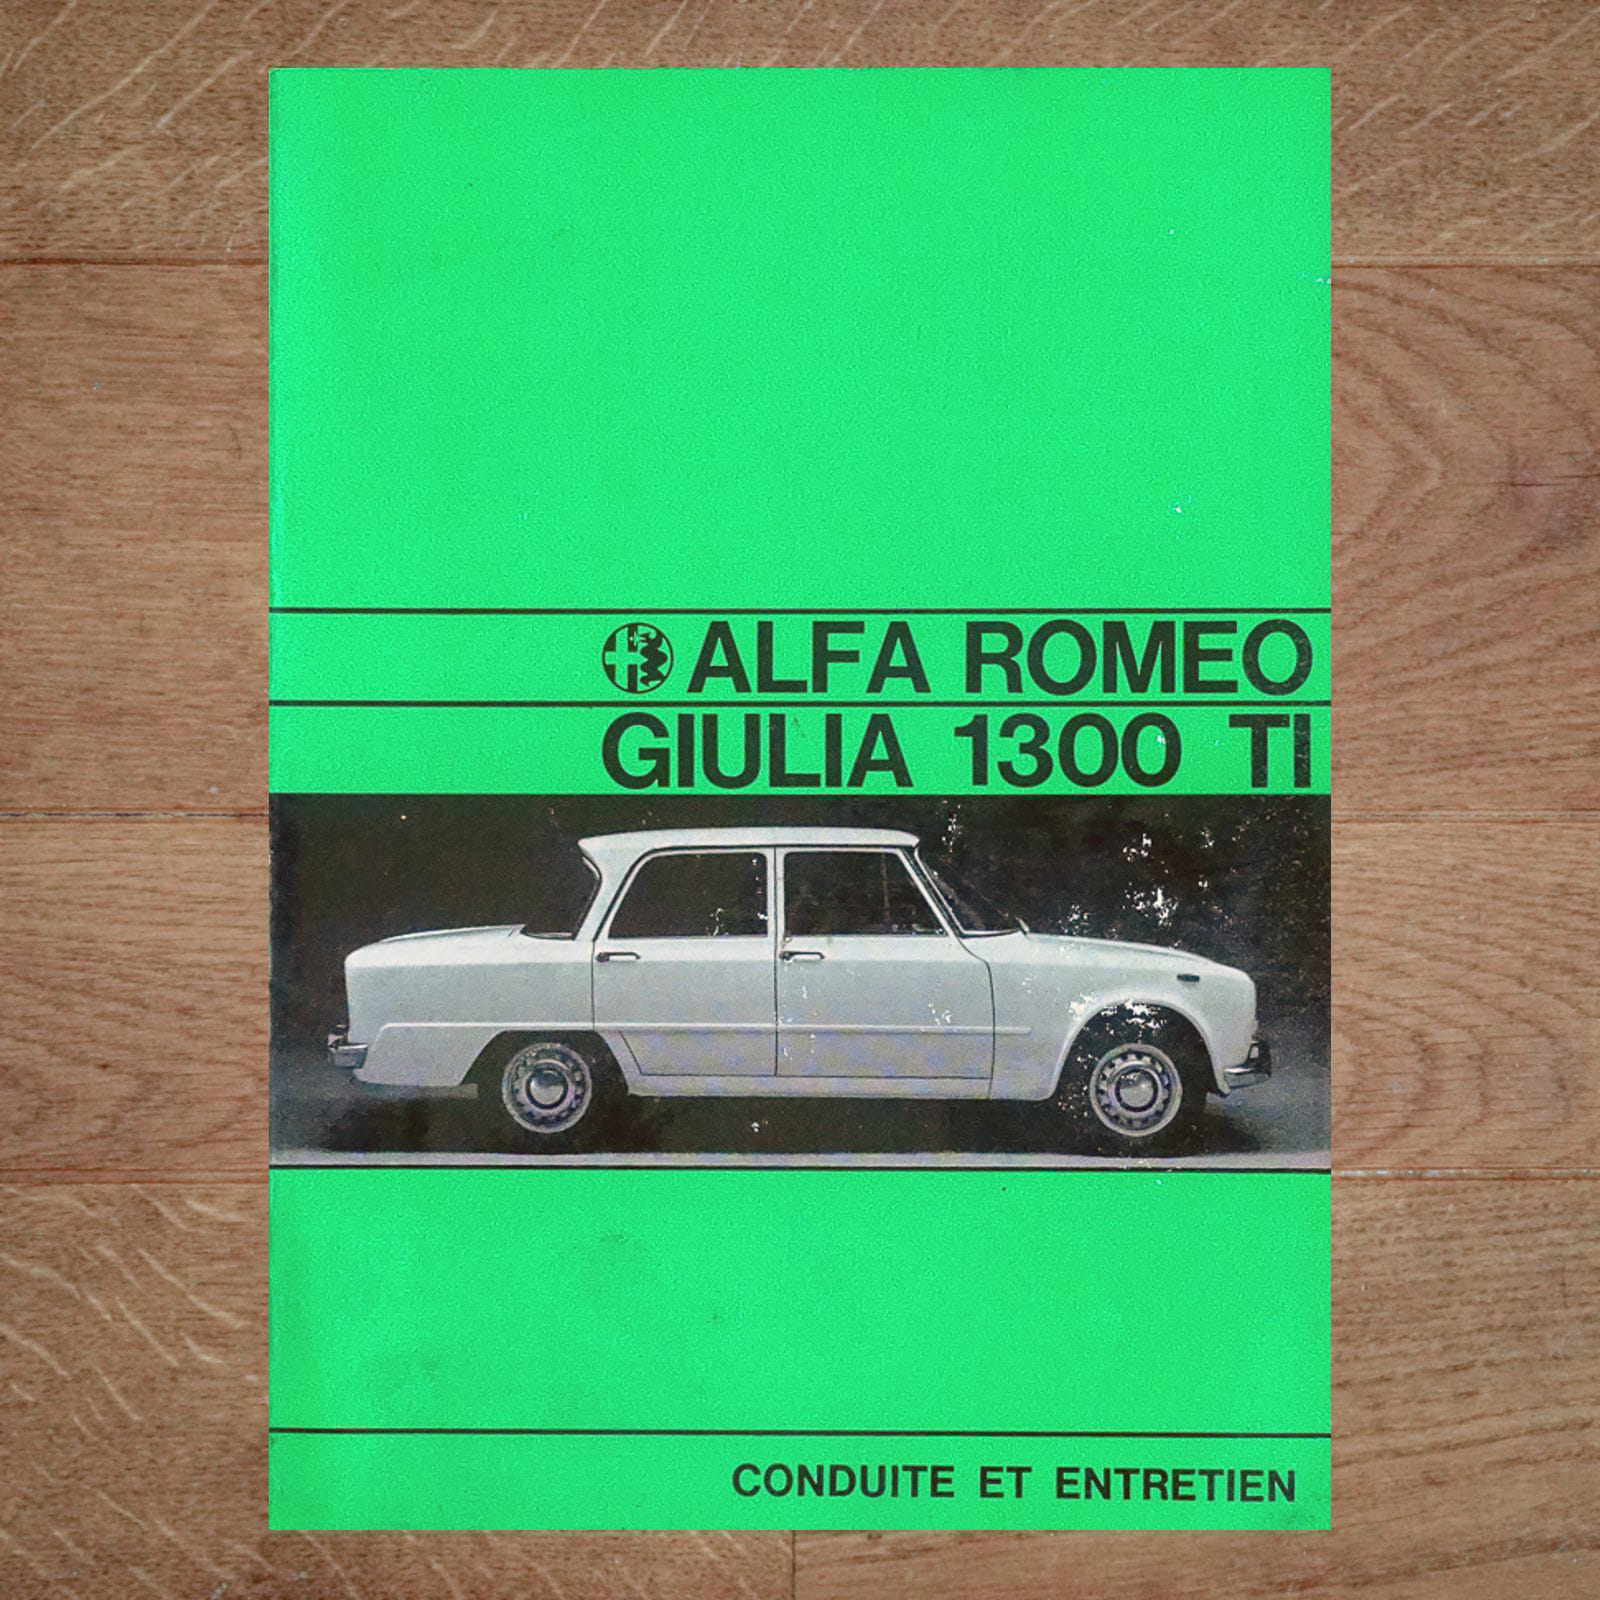 Vintage Original Alfa Romeo Giulia 1300 TI User Manual, 4